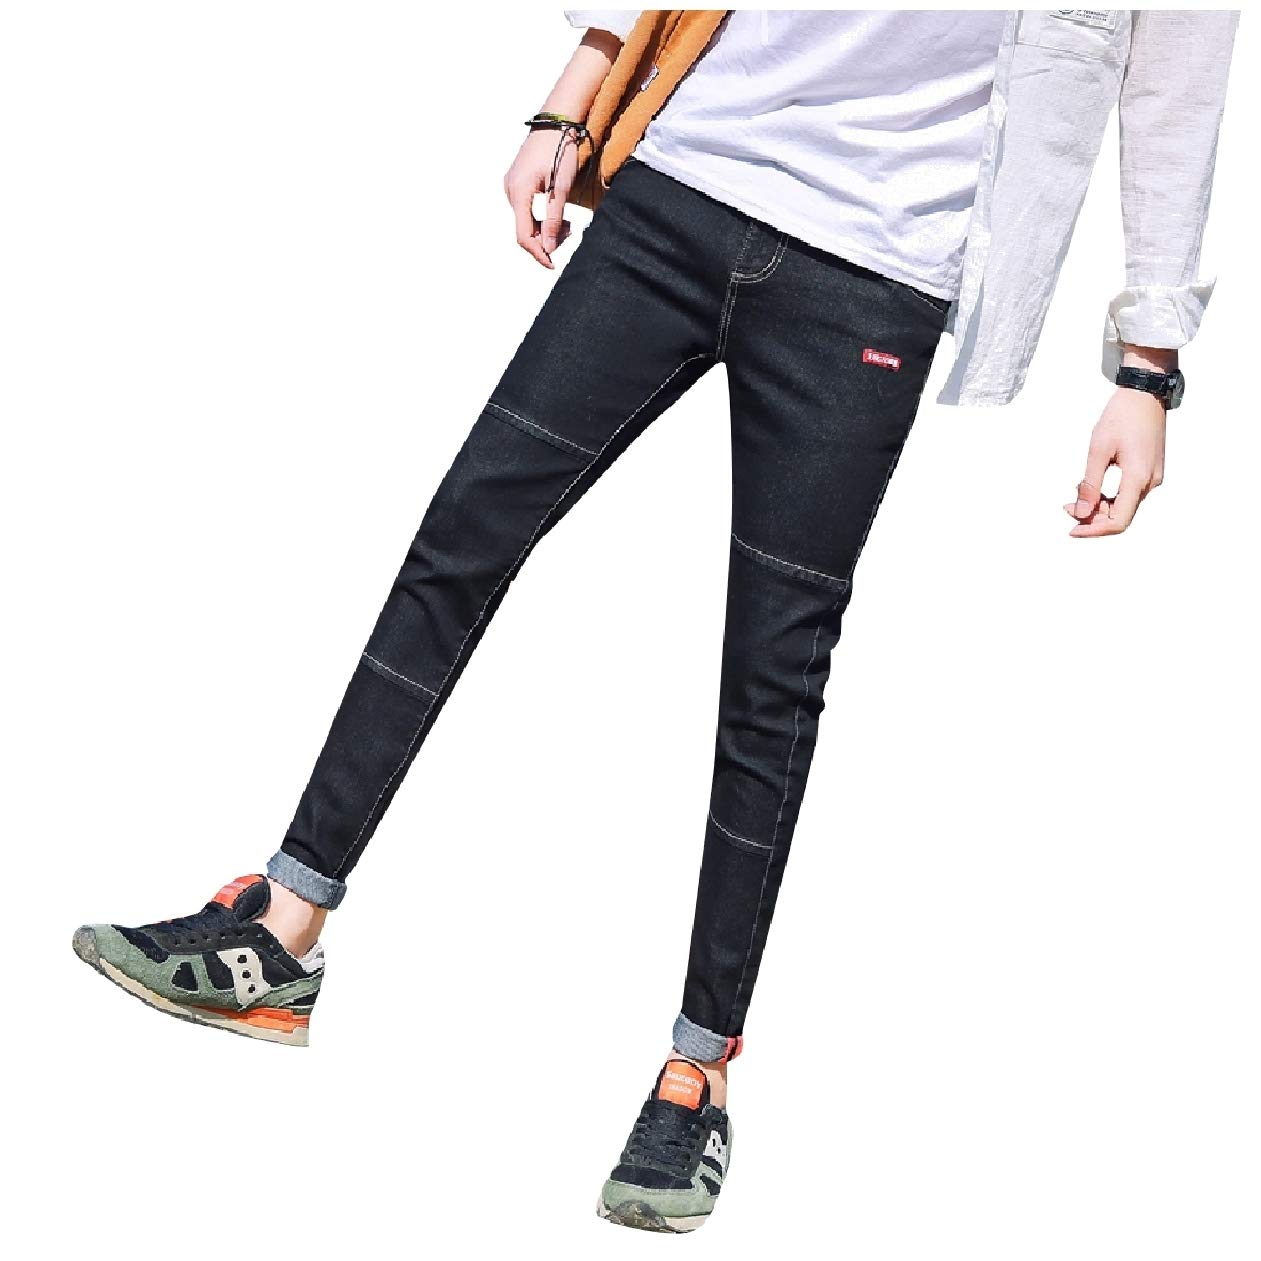 Tootless-Men Simple Juniors Patched Middle Waist Denim Pants Jeans